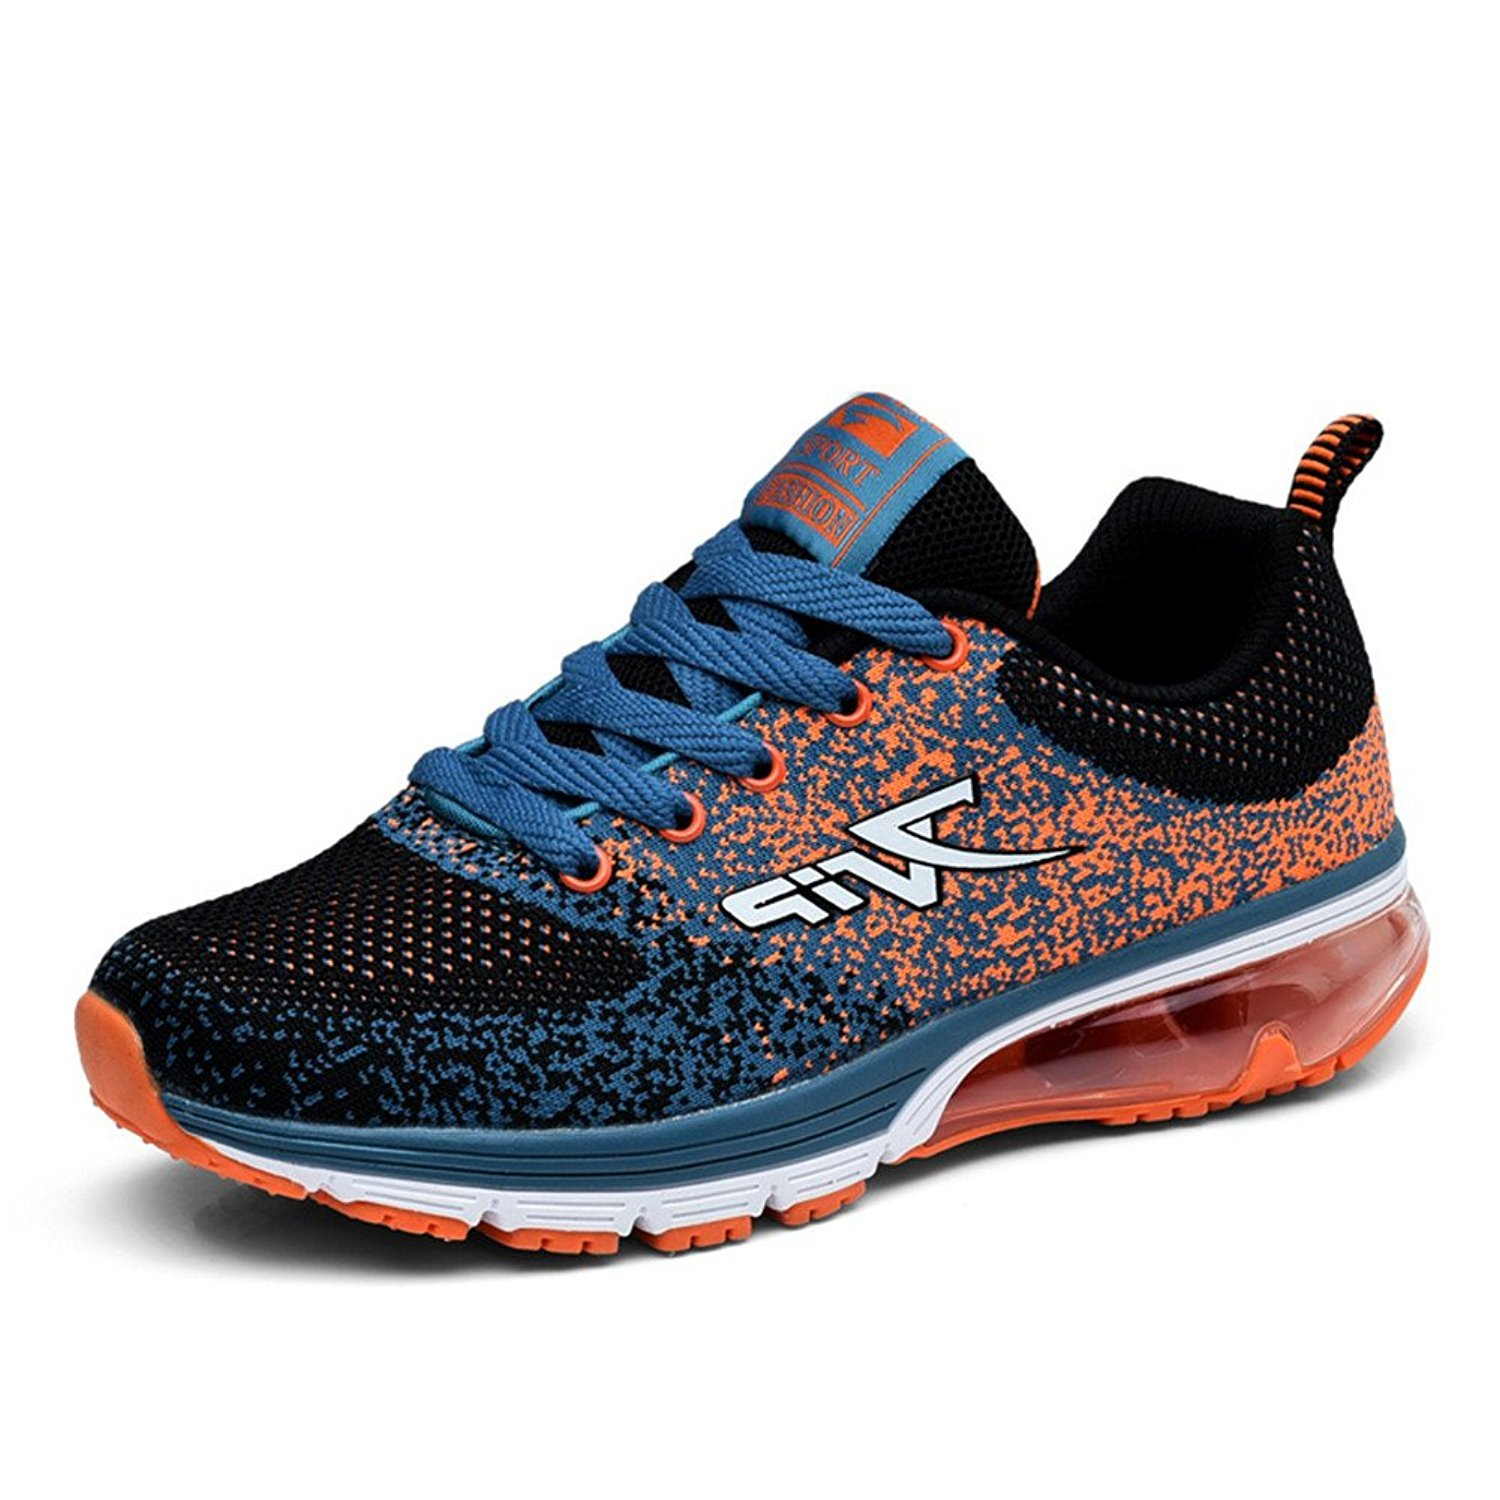 BEIXI Mens 2018 New Air Cushion Outdoor Sport Running Shoes Lightweight Casual Sneakers